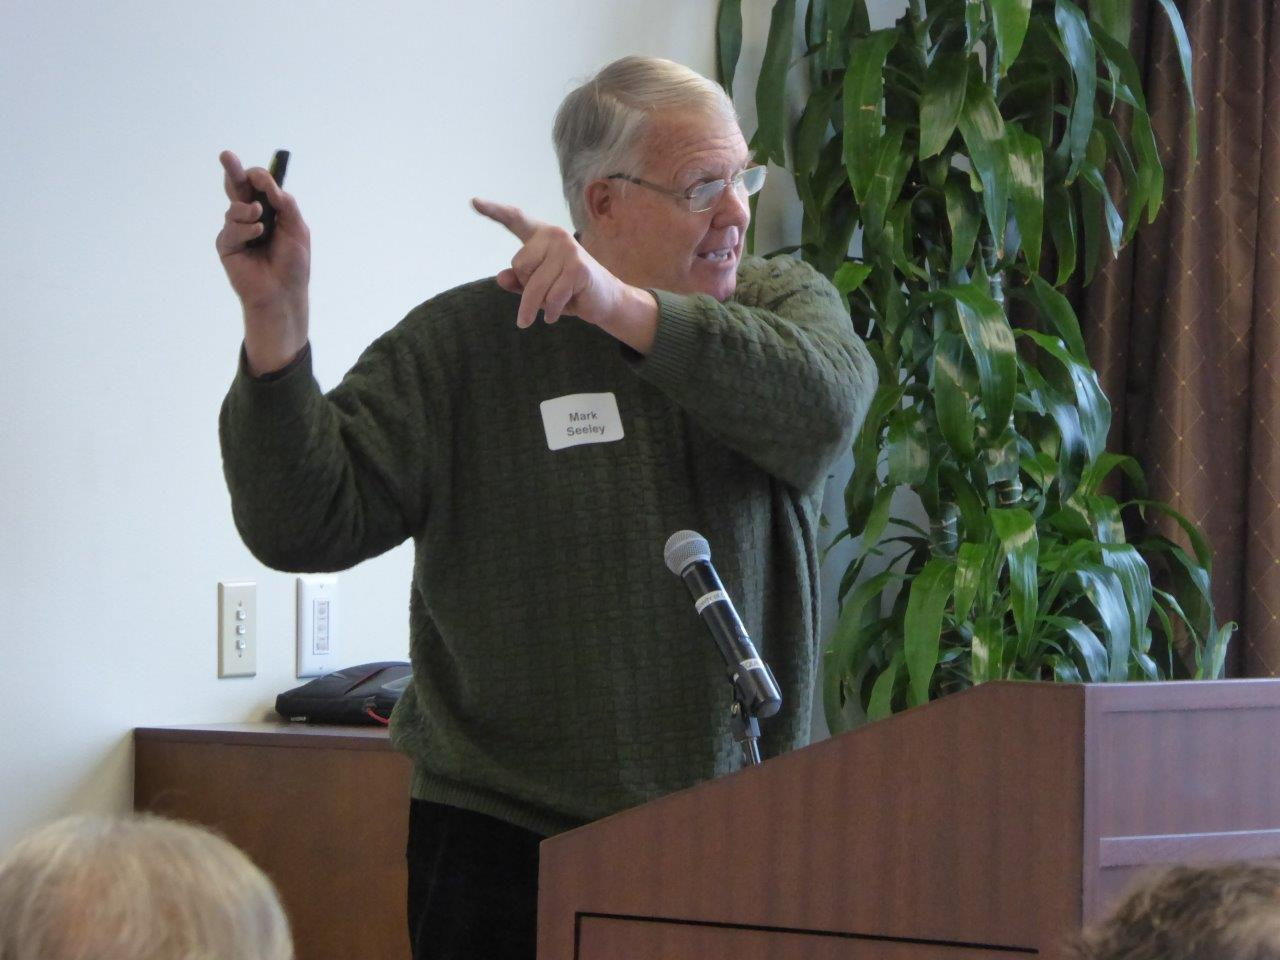 Mark Seeley explained the weather forecast at the January 2107 luncheon